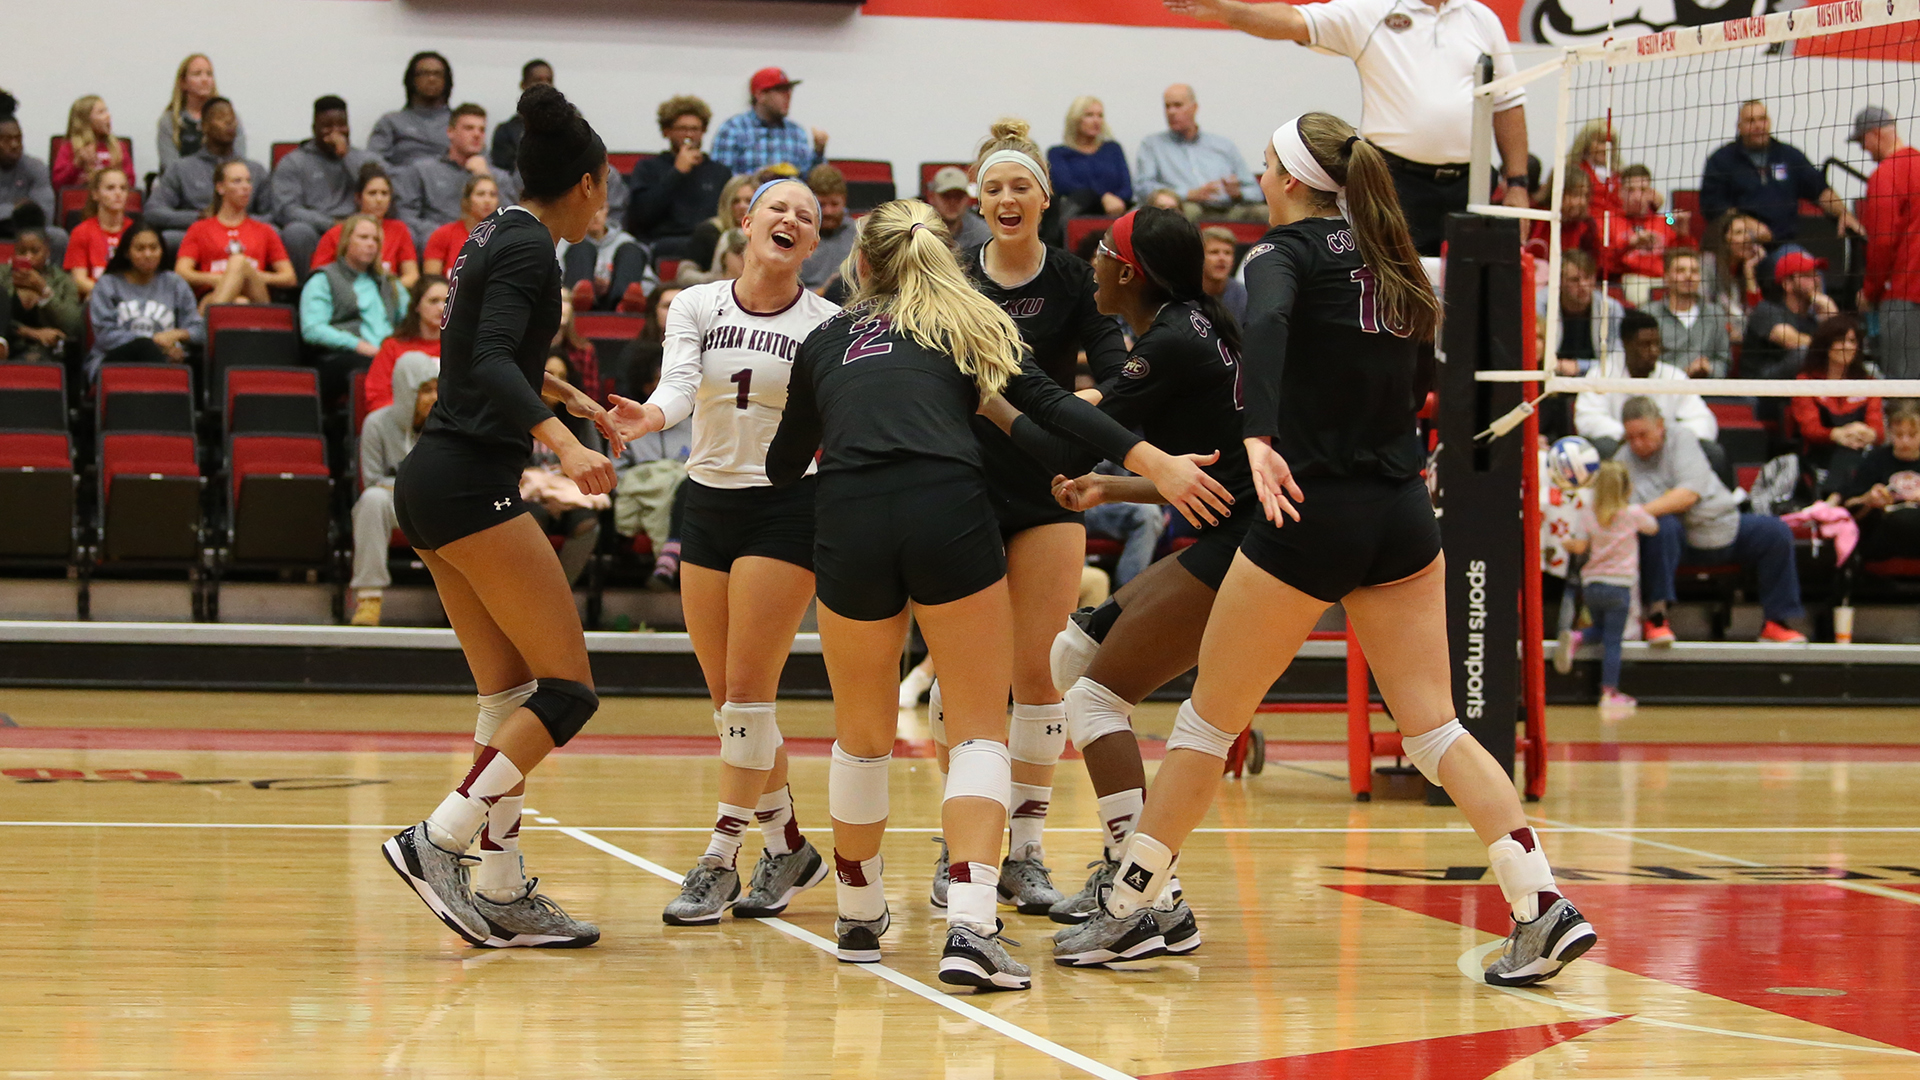 Colonel Volleyball tabbed fourth in OVC; Rojas, Knutson Voted To 2018 Preseason All-OVC Team